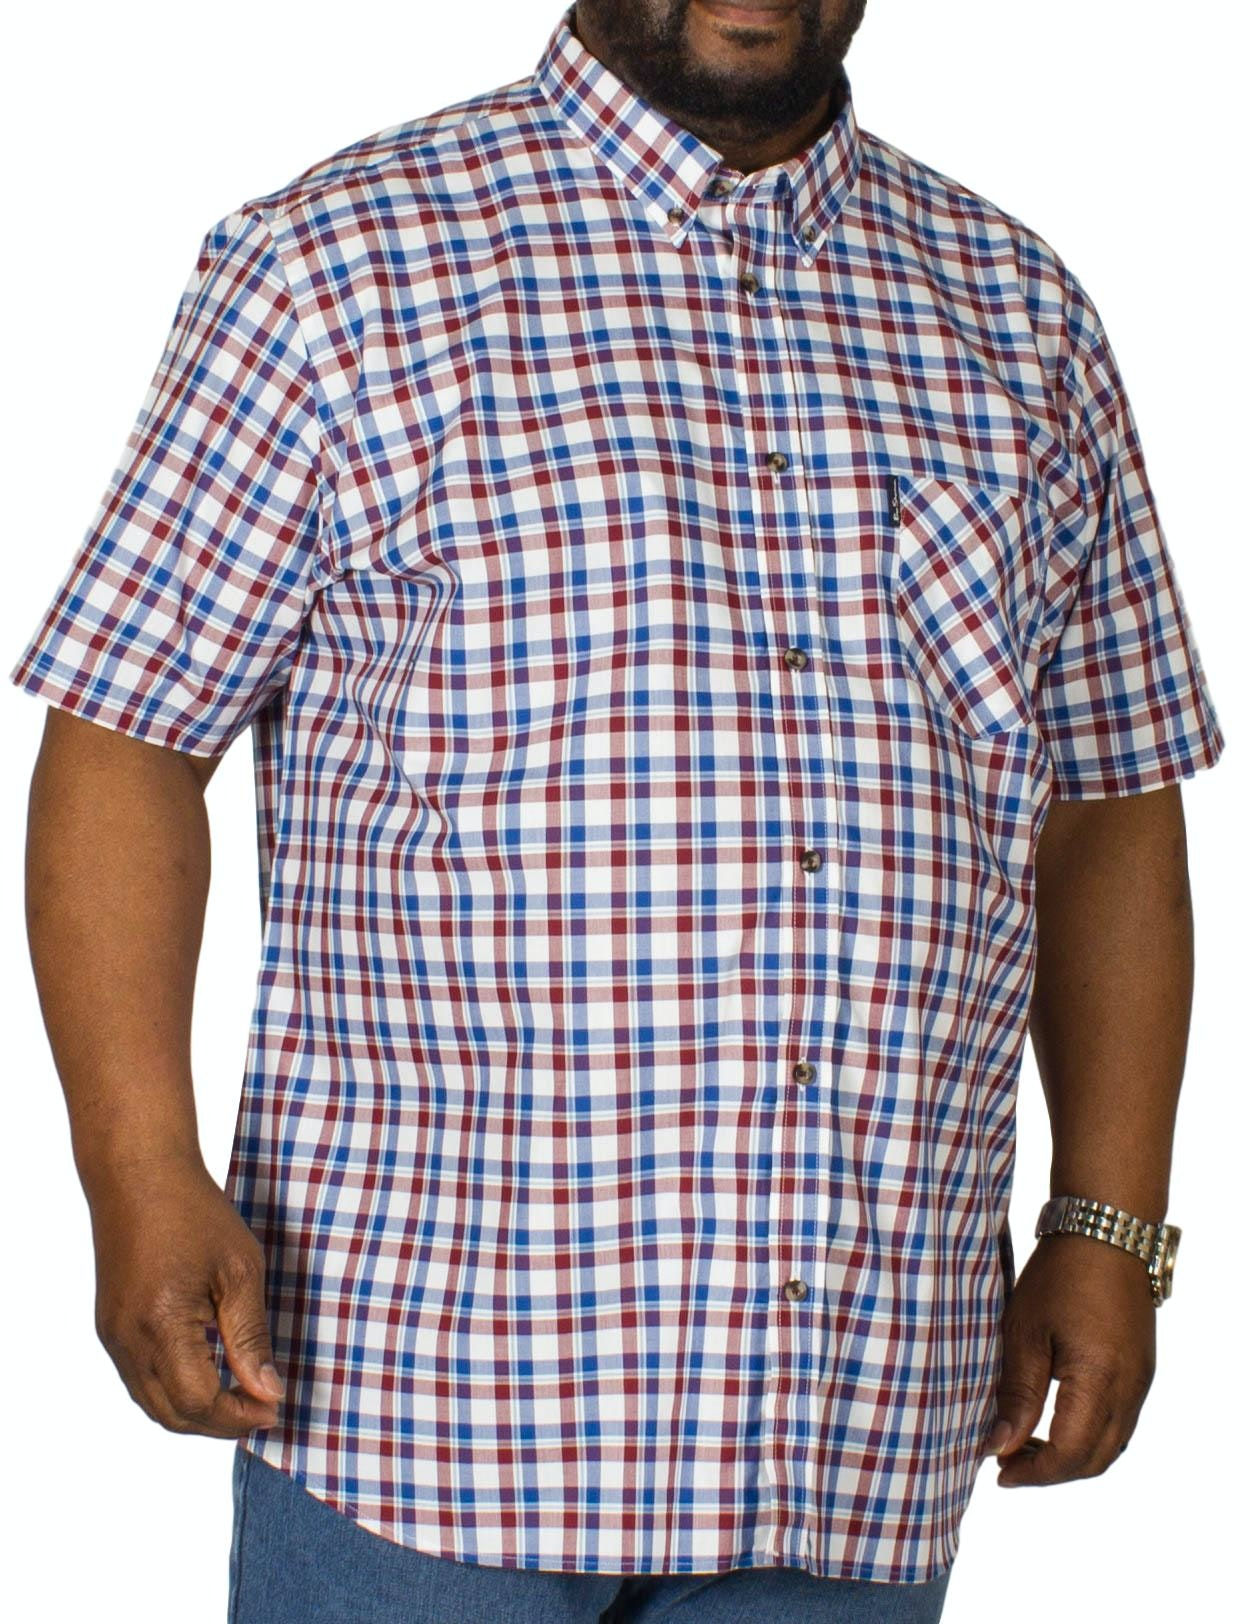 Ben Sherman Oxford Check Short Sleeve Shirt Wine